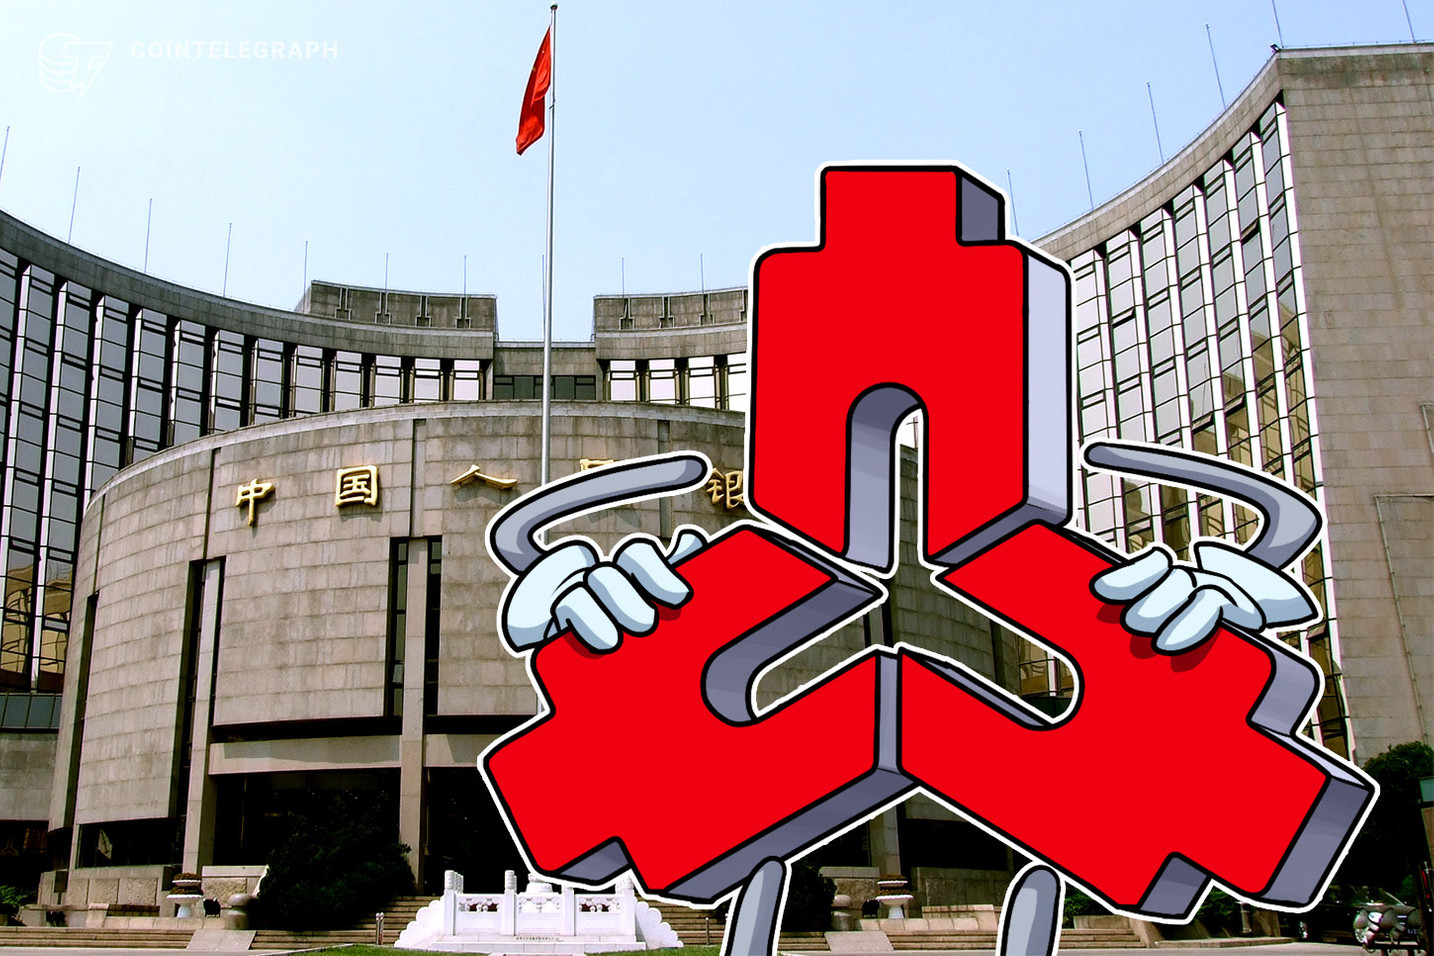 China's Central Bank Issues Warning Against Blockchain Investment 'Bubble'